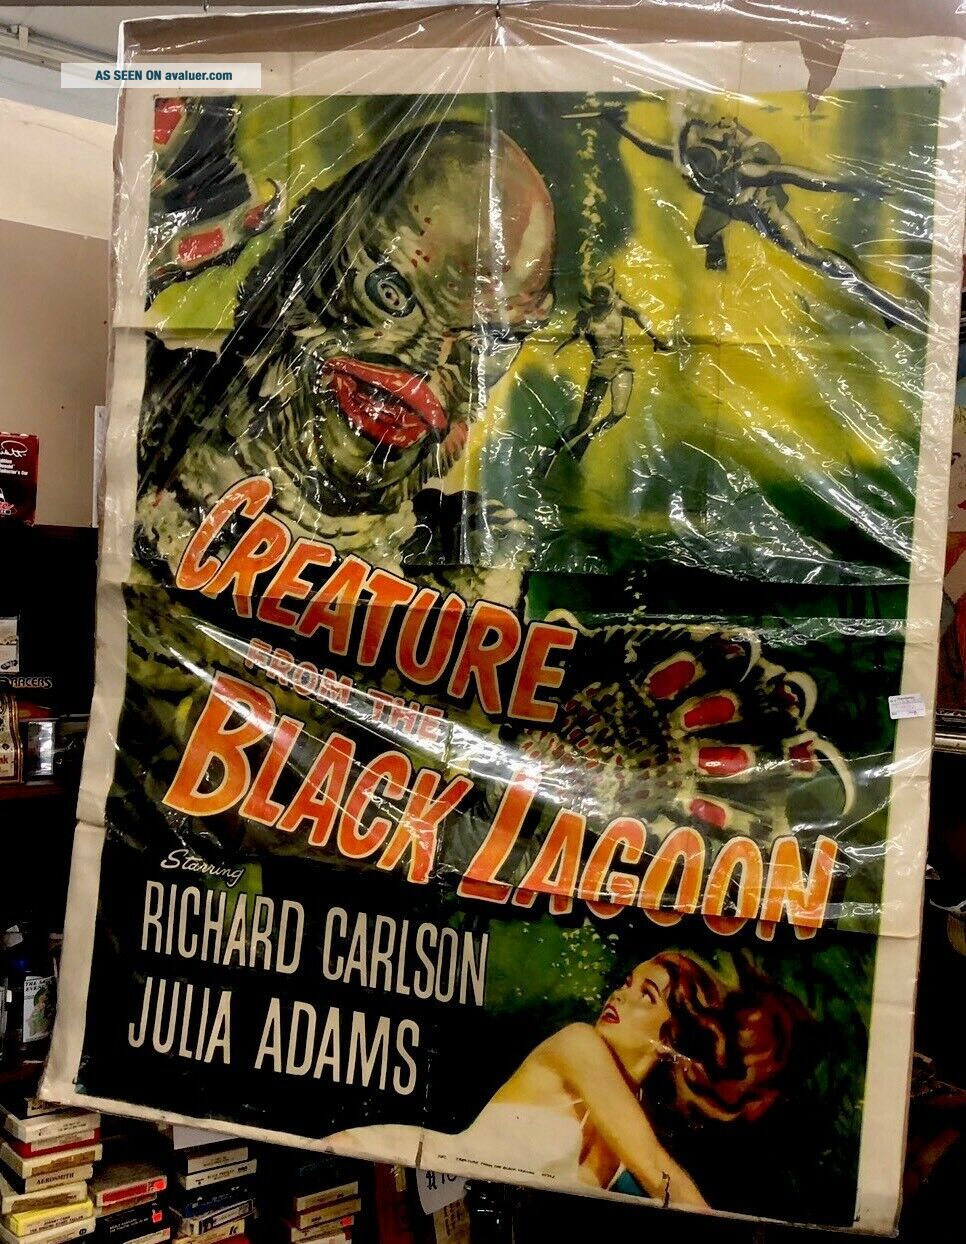 CREATURE FROM THE BLACK LAGOON CARLSON ADAMS - LARGE MOVIE POSTER Rare